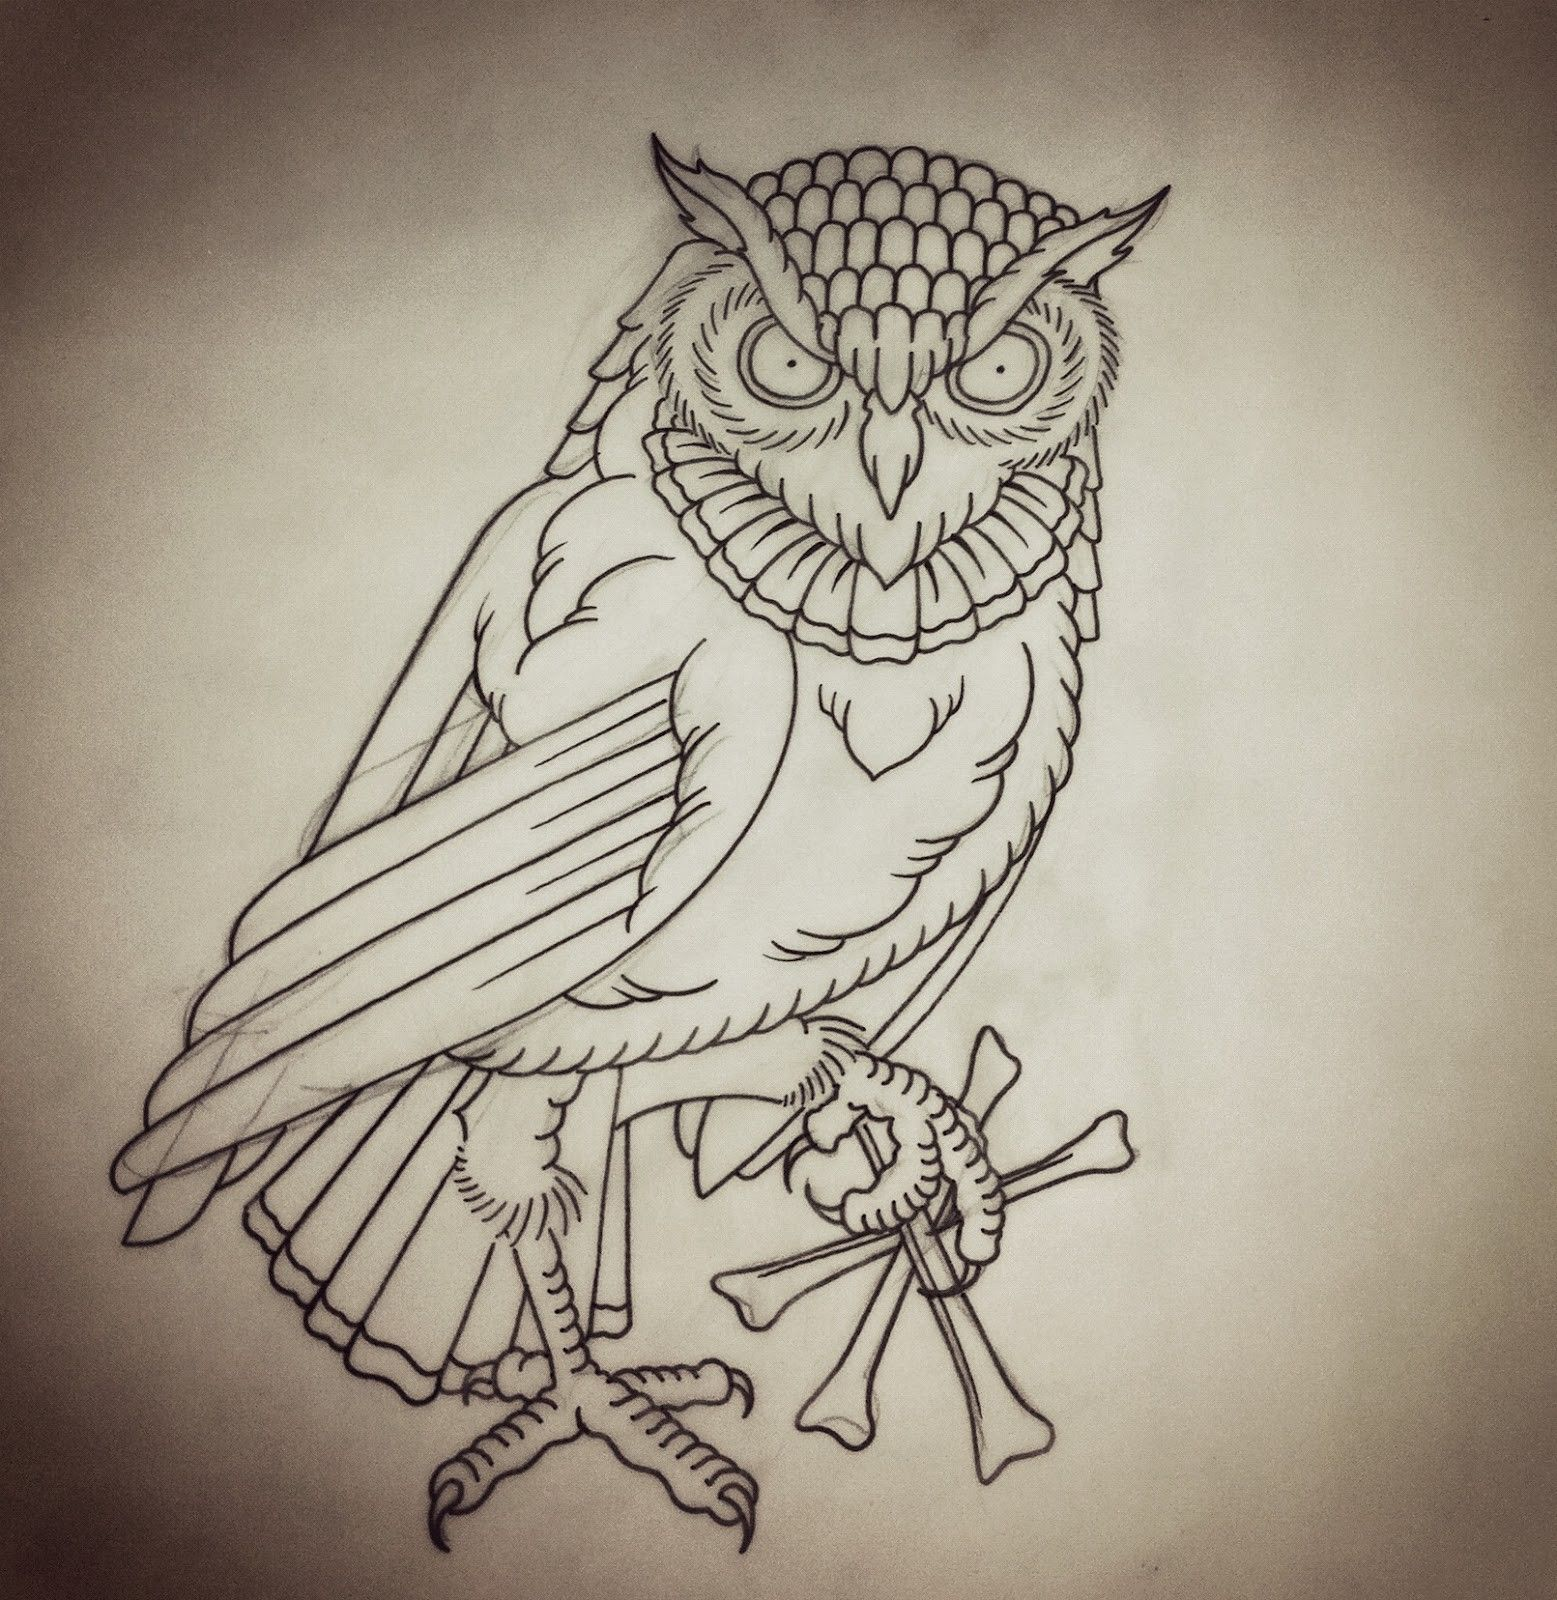 Aseanpeople Me Nbspthis Website Is For Sale Nbspaseanpeople Resources And Information Owl Stencil Owl Tattoo Owl Sketch